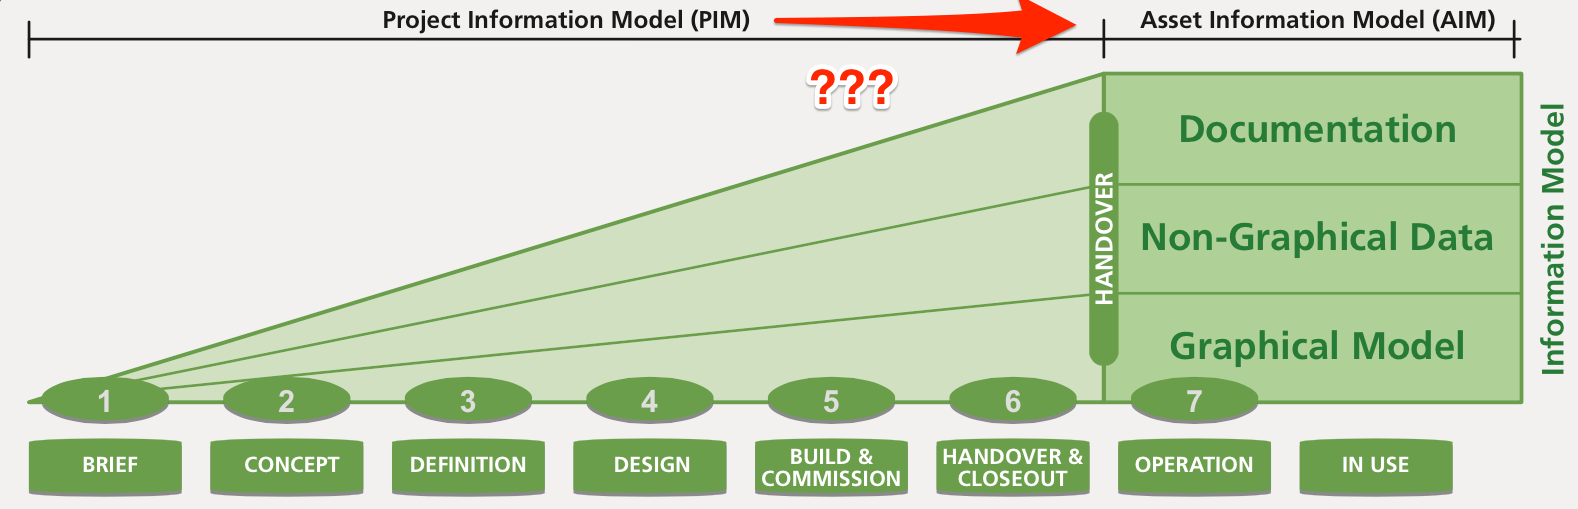 Project Information Model to Asset Information Model